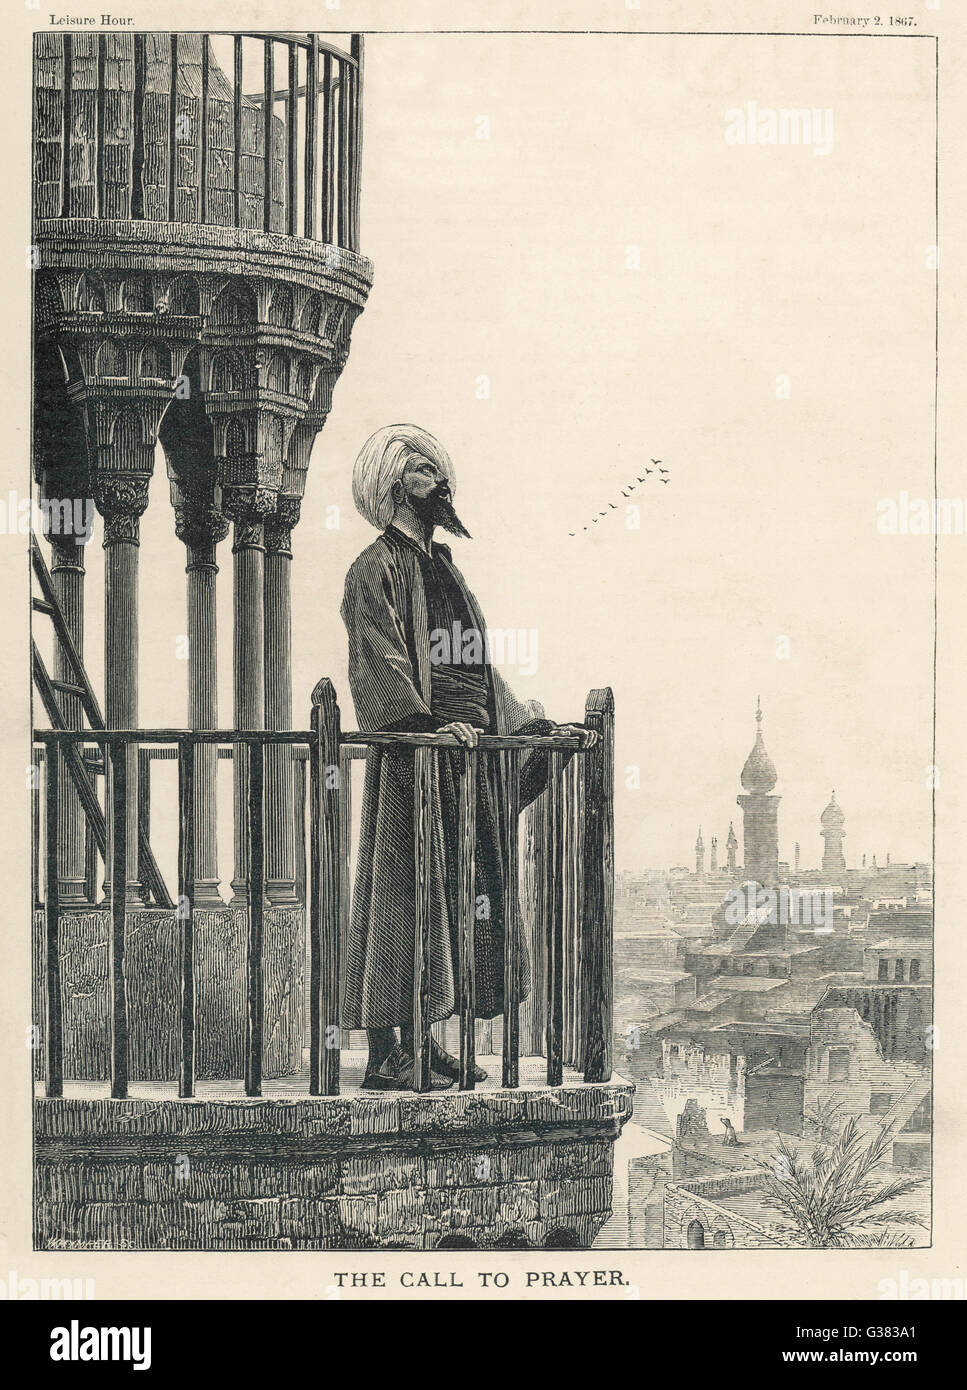 The Muezzin calls the faithful  to prayer from a minaret         Date: 1867 - Stock Image